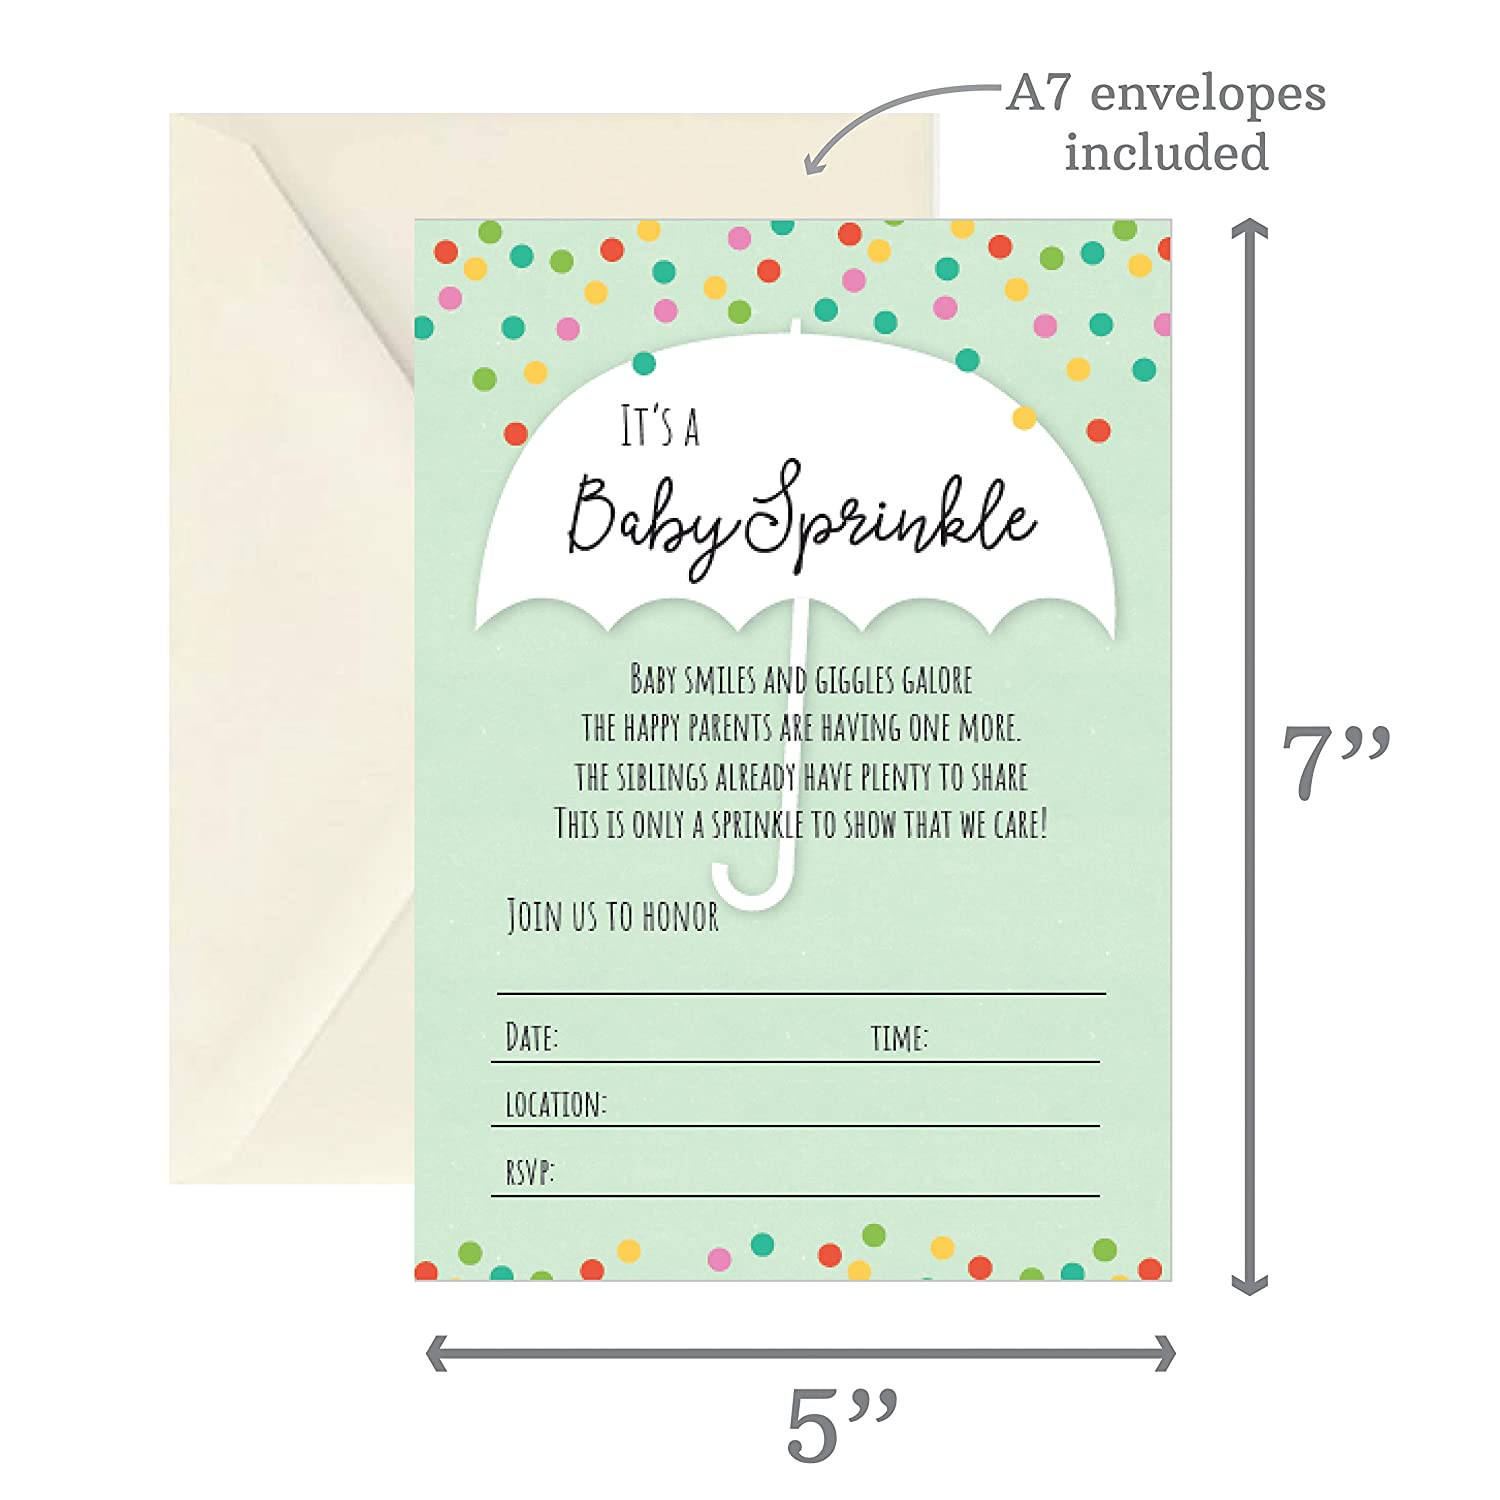 Baby Shower Invitations For Boys Design The Best For The Special Amazon.com: Baby Sprinkle-baby Shower Invitation, Set Of 20 Fill In The  Blank Invitations - Invites For Boy Girl Shower, Siblings, Second Kid:  Health ...